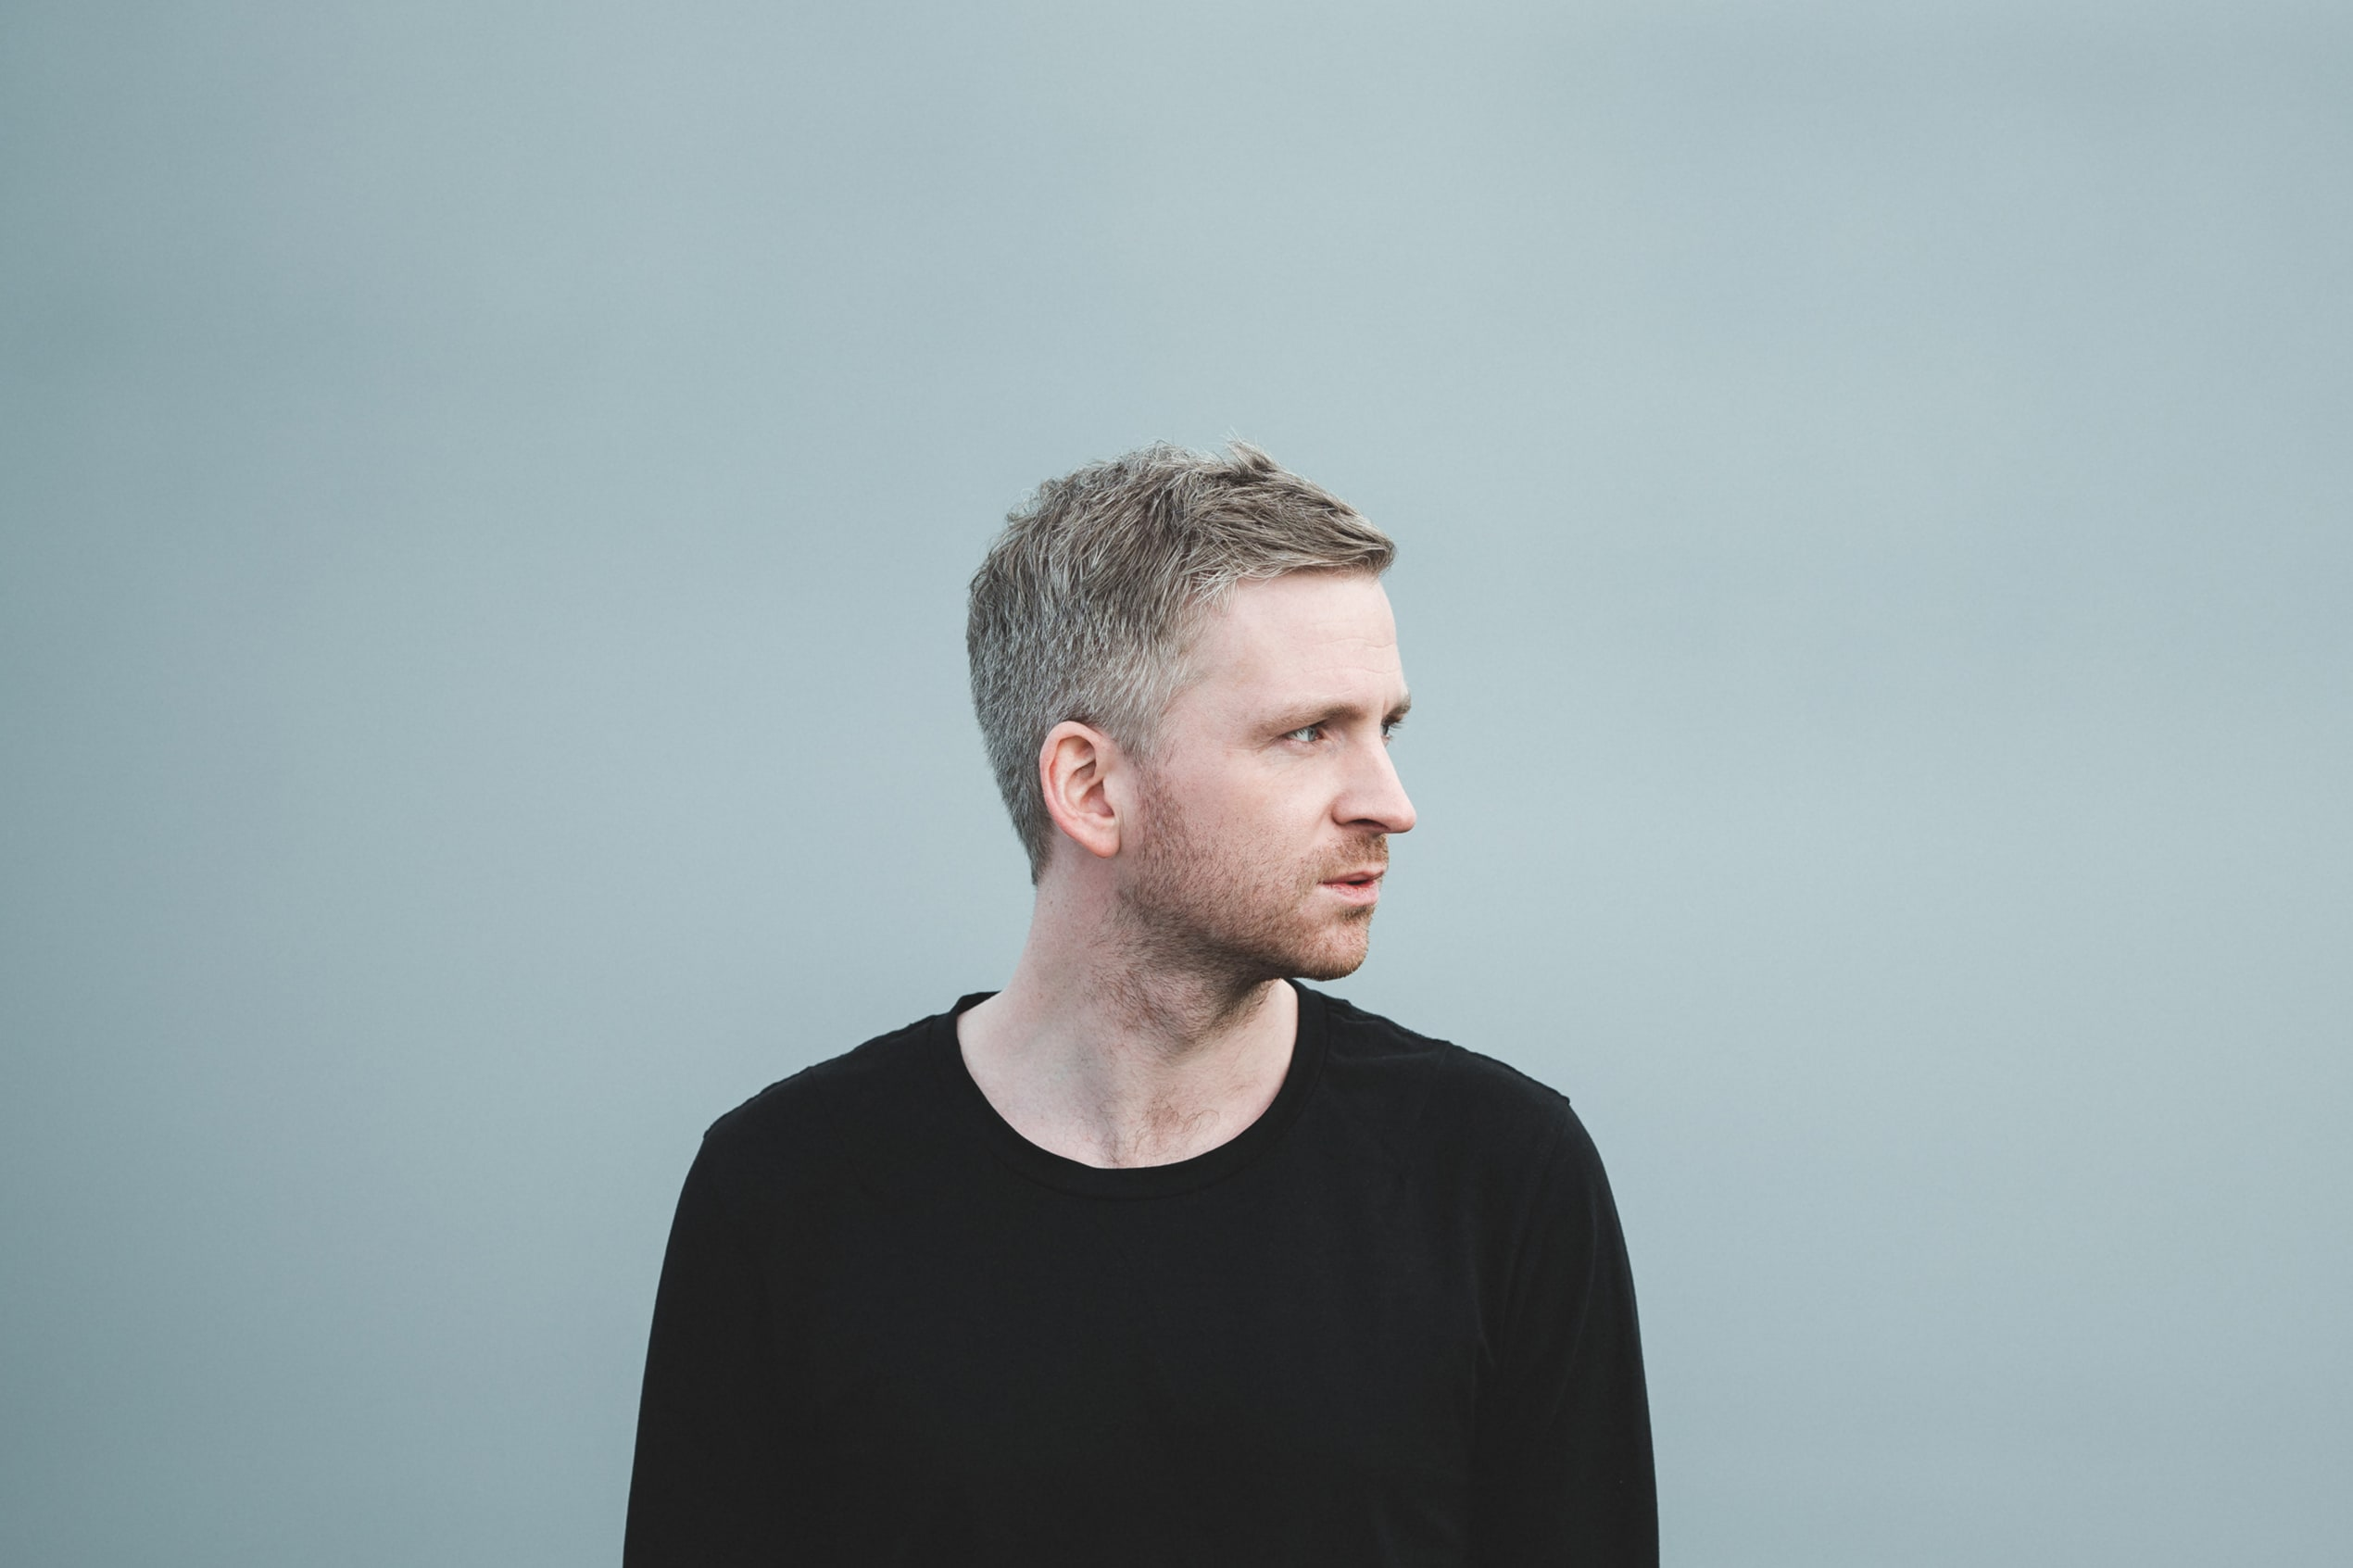 Olafur Arnalds pictured in a black sweater, with his head facing off to the side